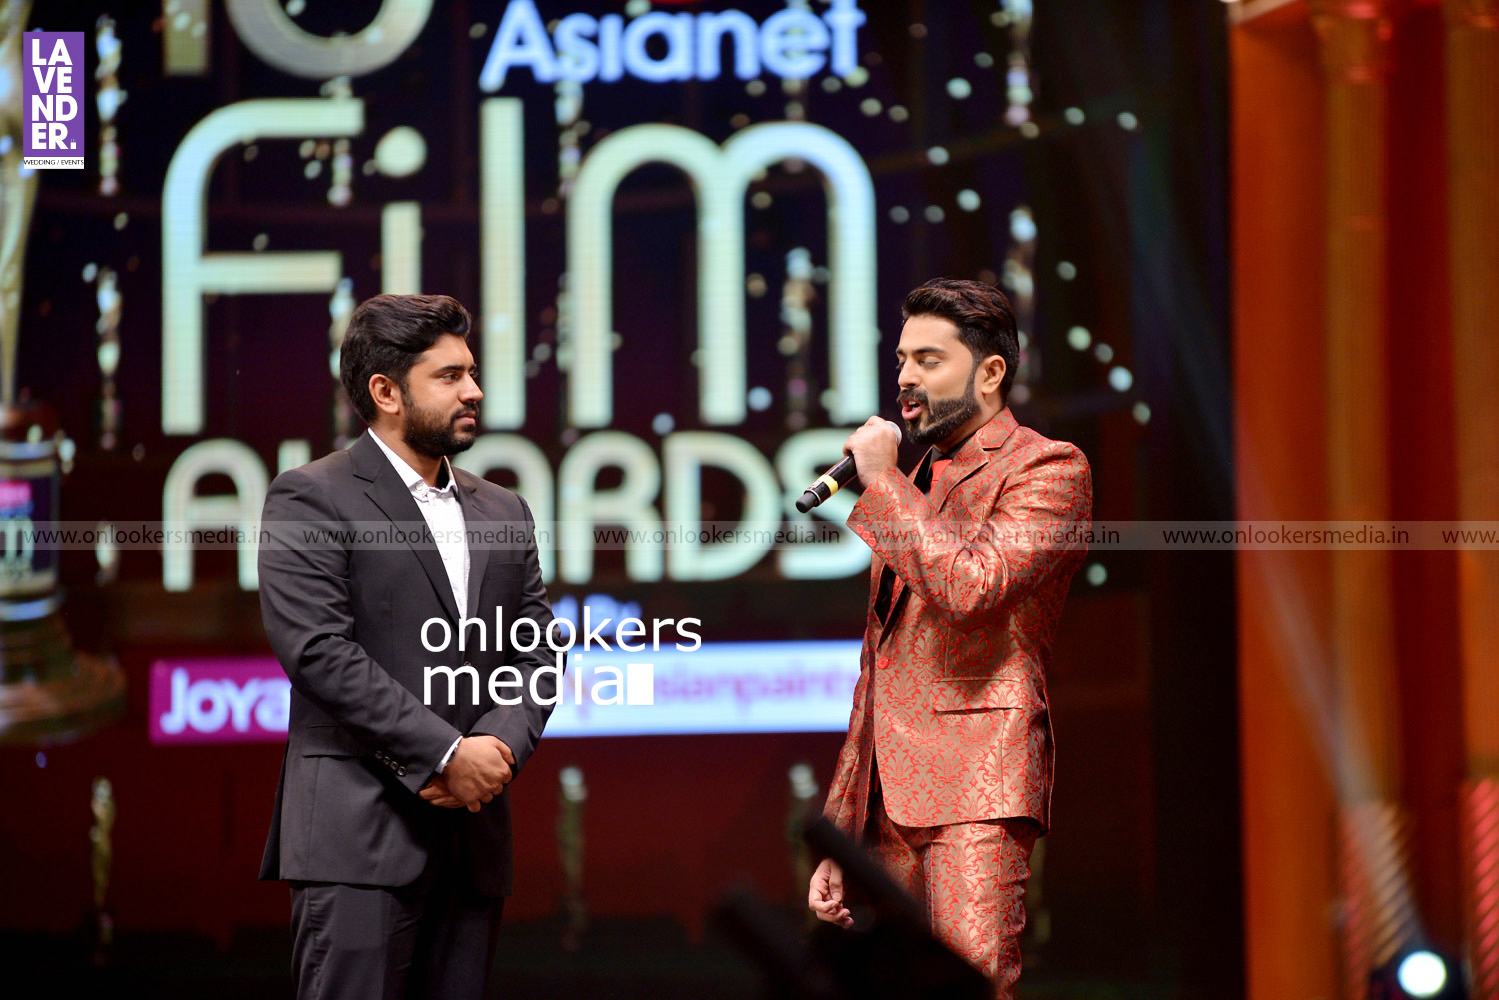 http://onlookersmedia.in/wp-content/uploads/2016/02/Nivin-Pauly-at-Asianet-Film-Award-2016-22.jpg